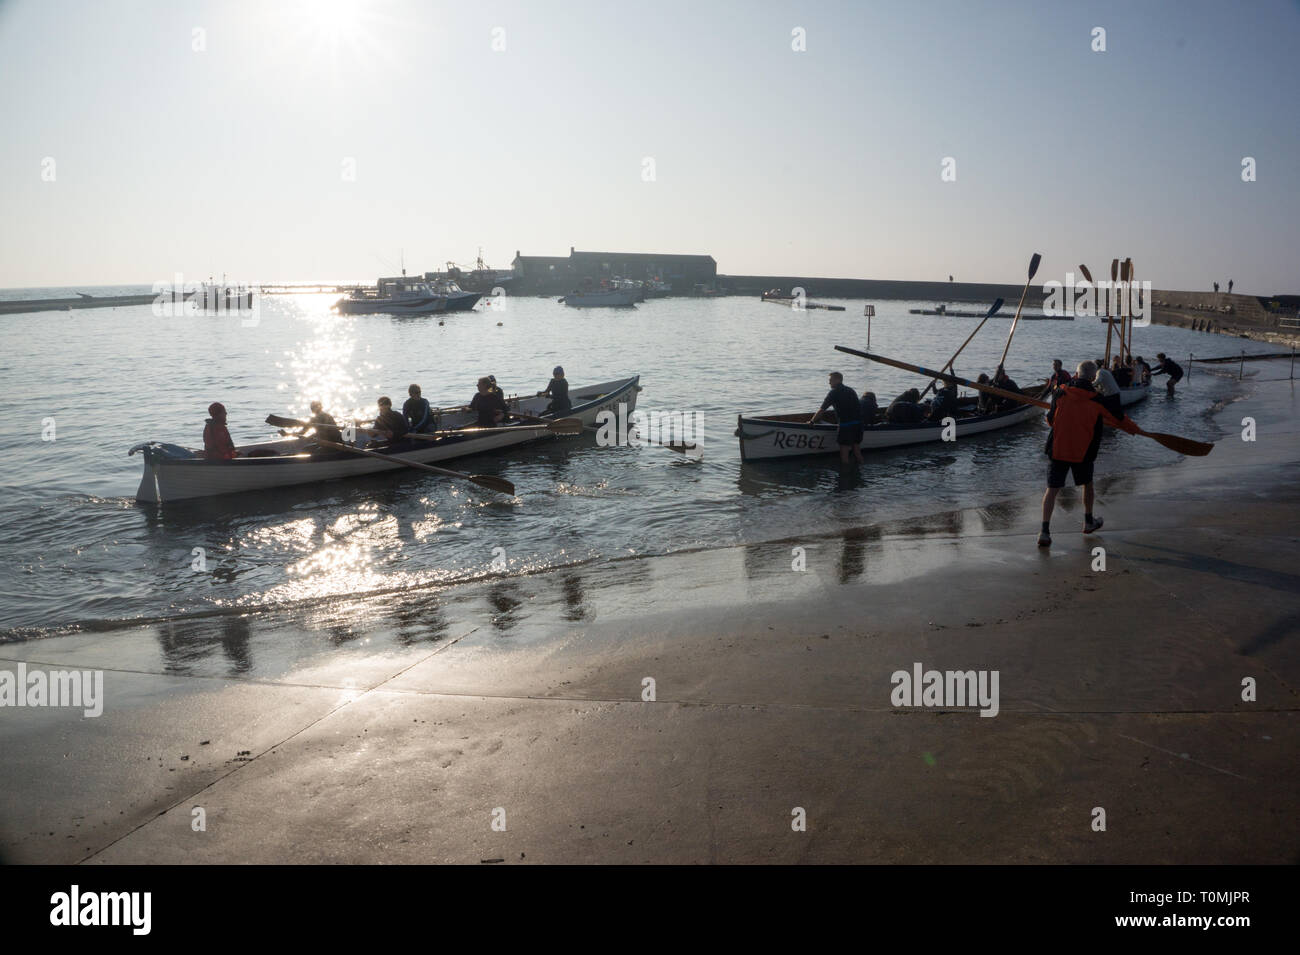 The Lyme Regis Gig club members setting out to sea from the Cobb, Lyme Bay, Dorset England UK - Stock Image